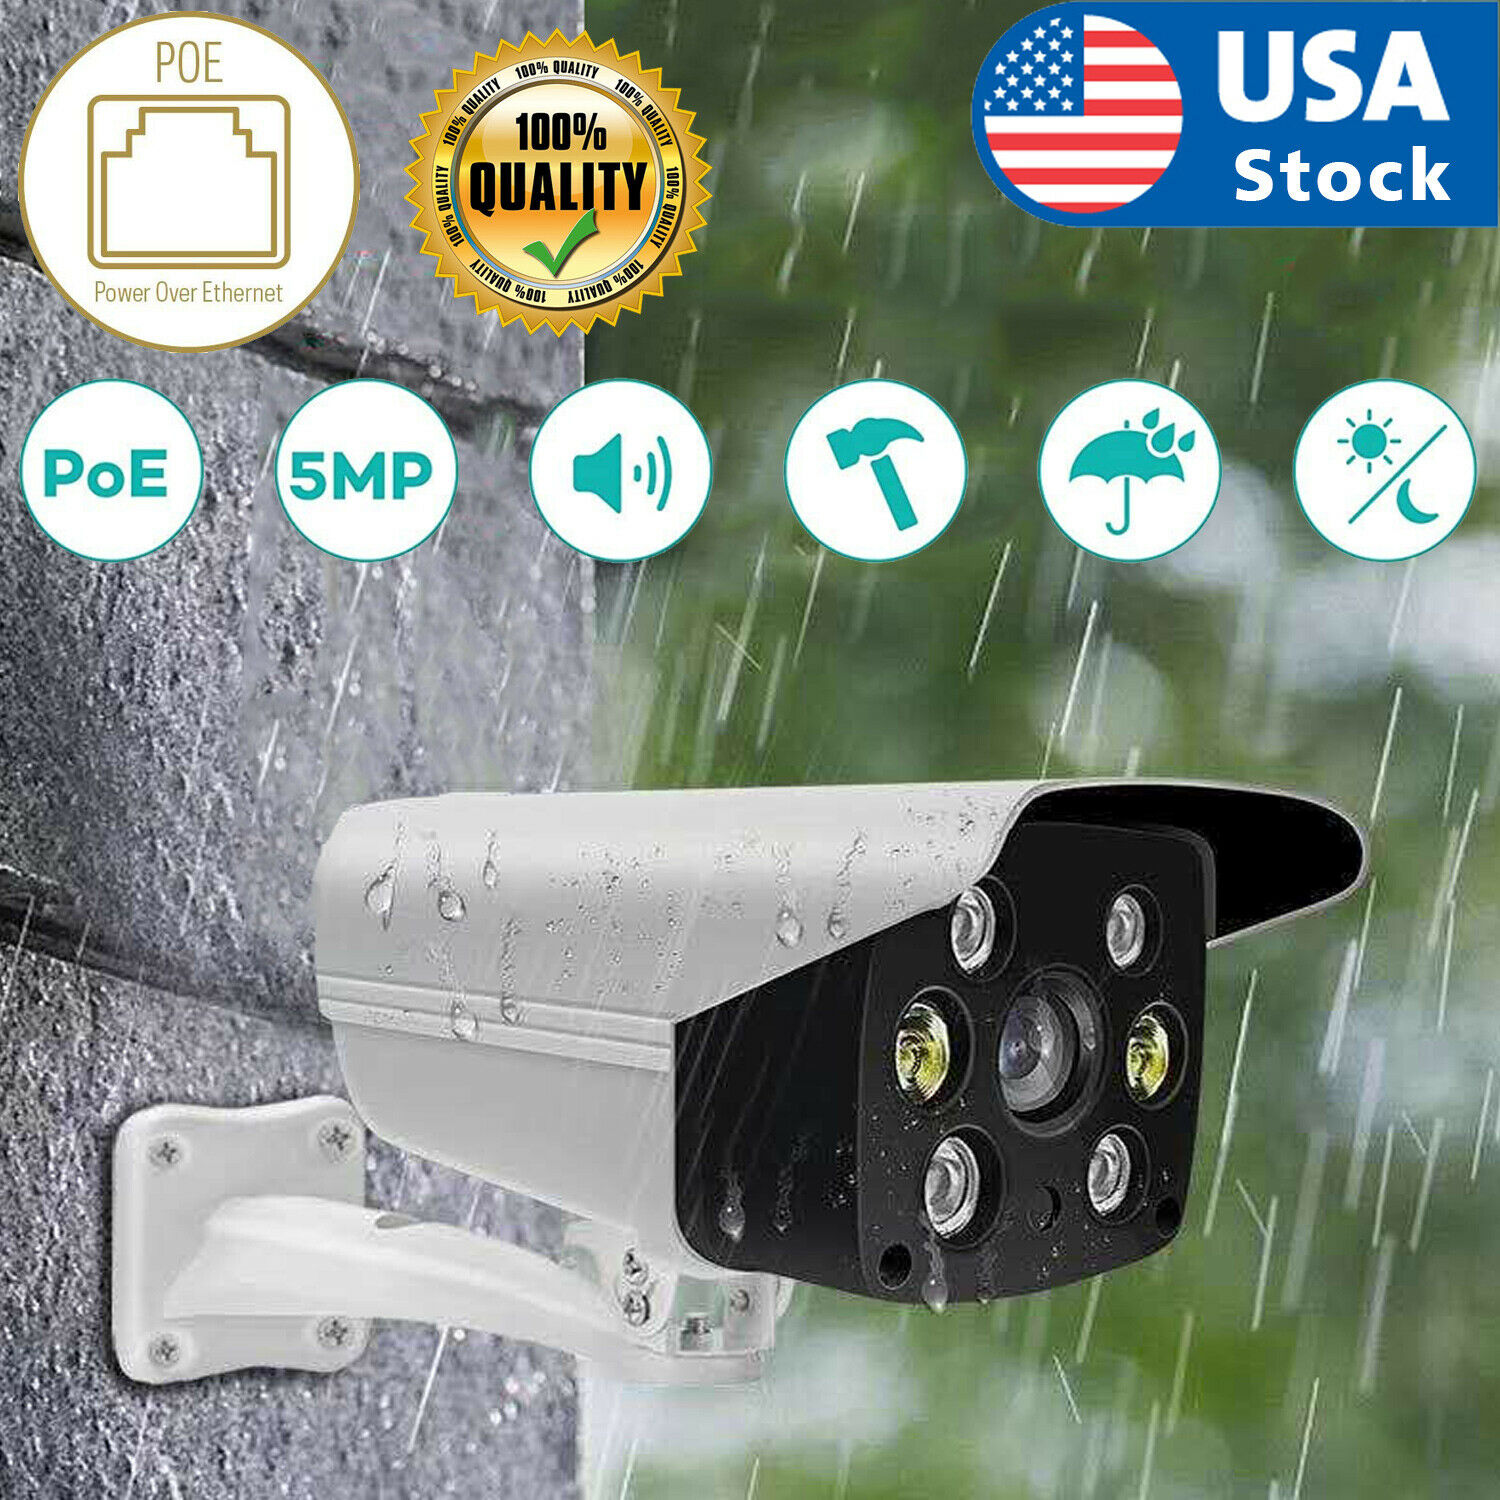 USA Outdoor Compatible ColorVu 5MP Bullet IP Camera Full Time Color 4mm CCTV POE Consumer Electronics